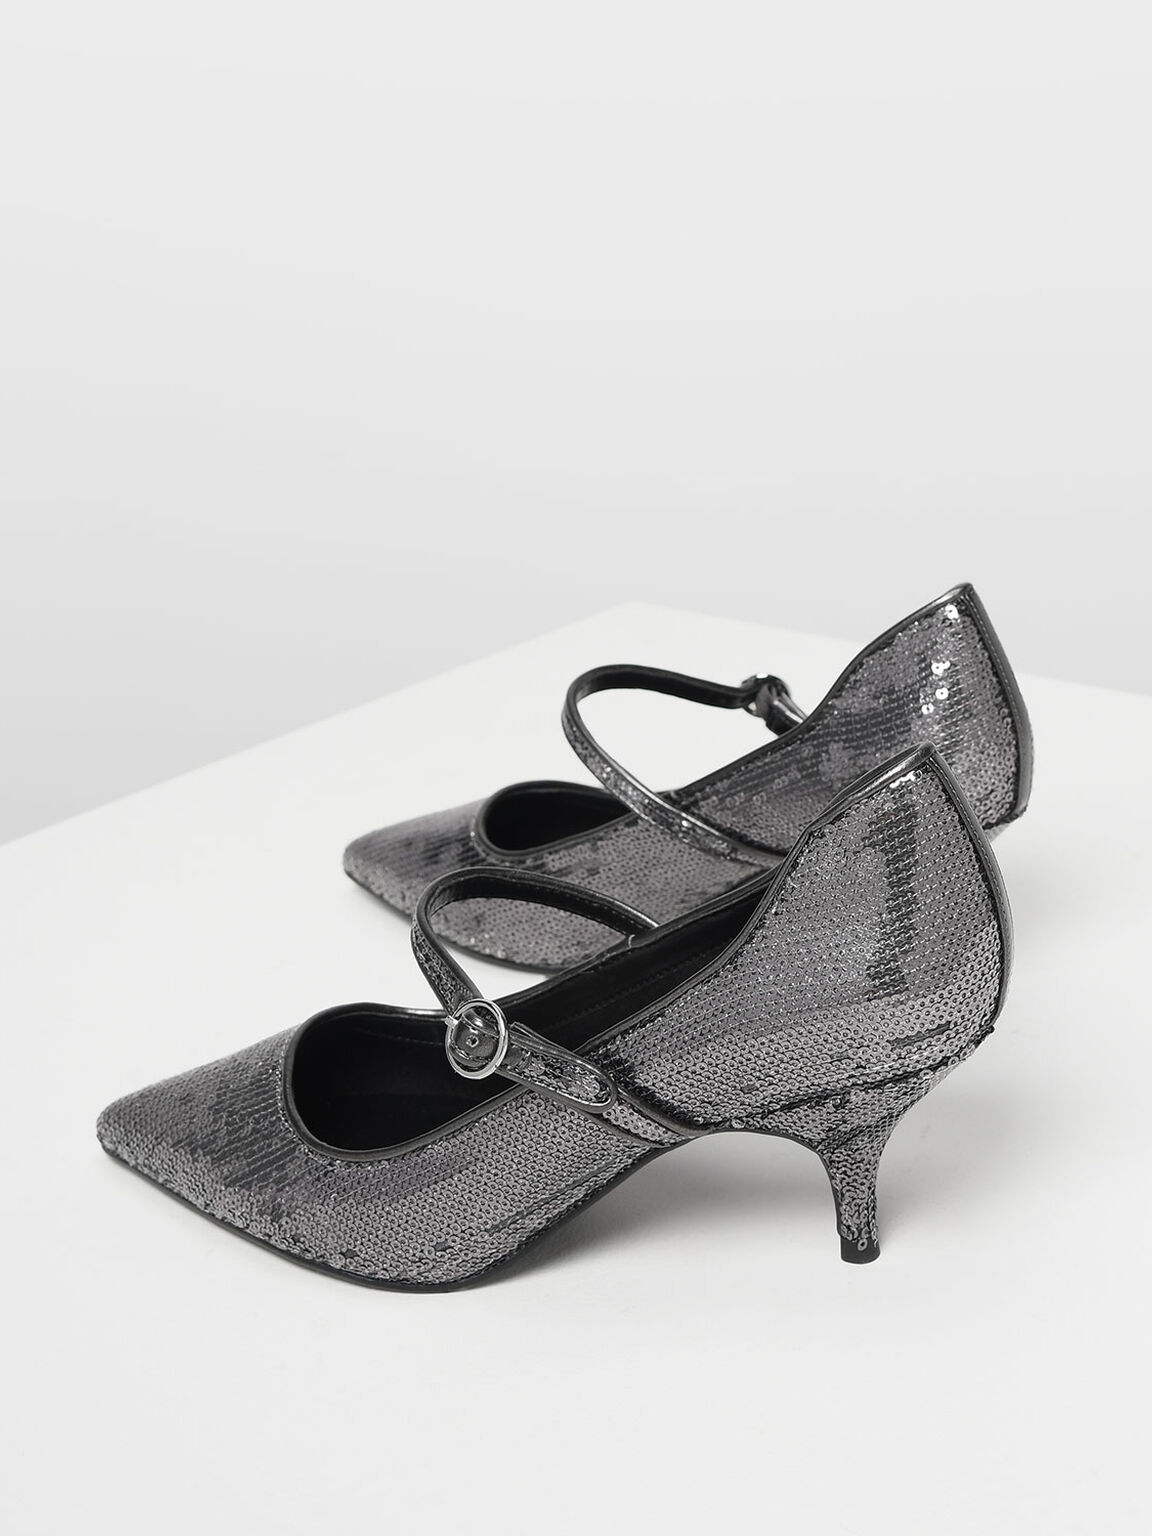 Sequin Mary Jane Pumps, Pewter, hi-res